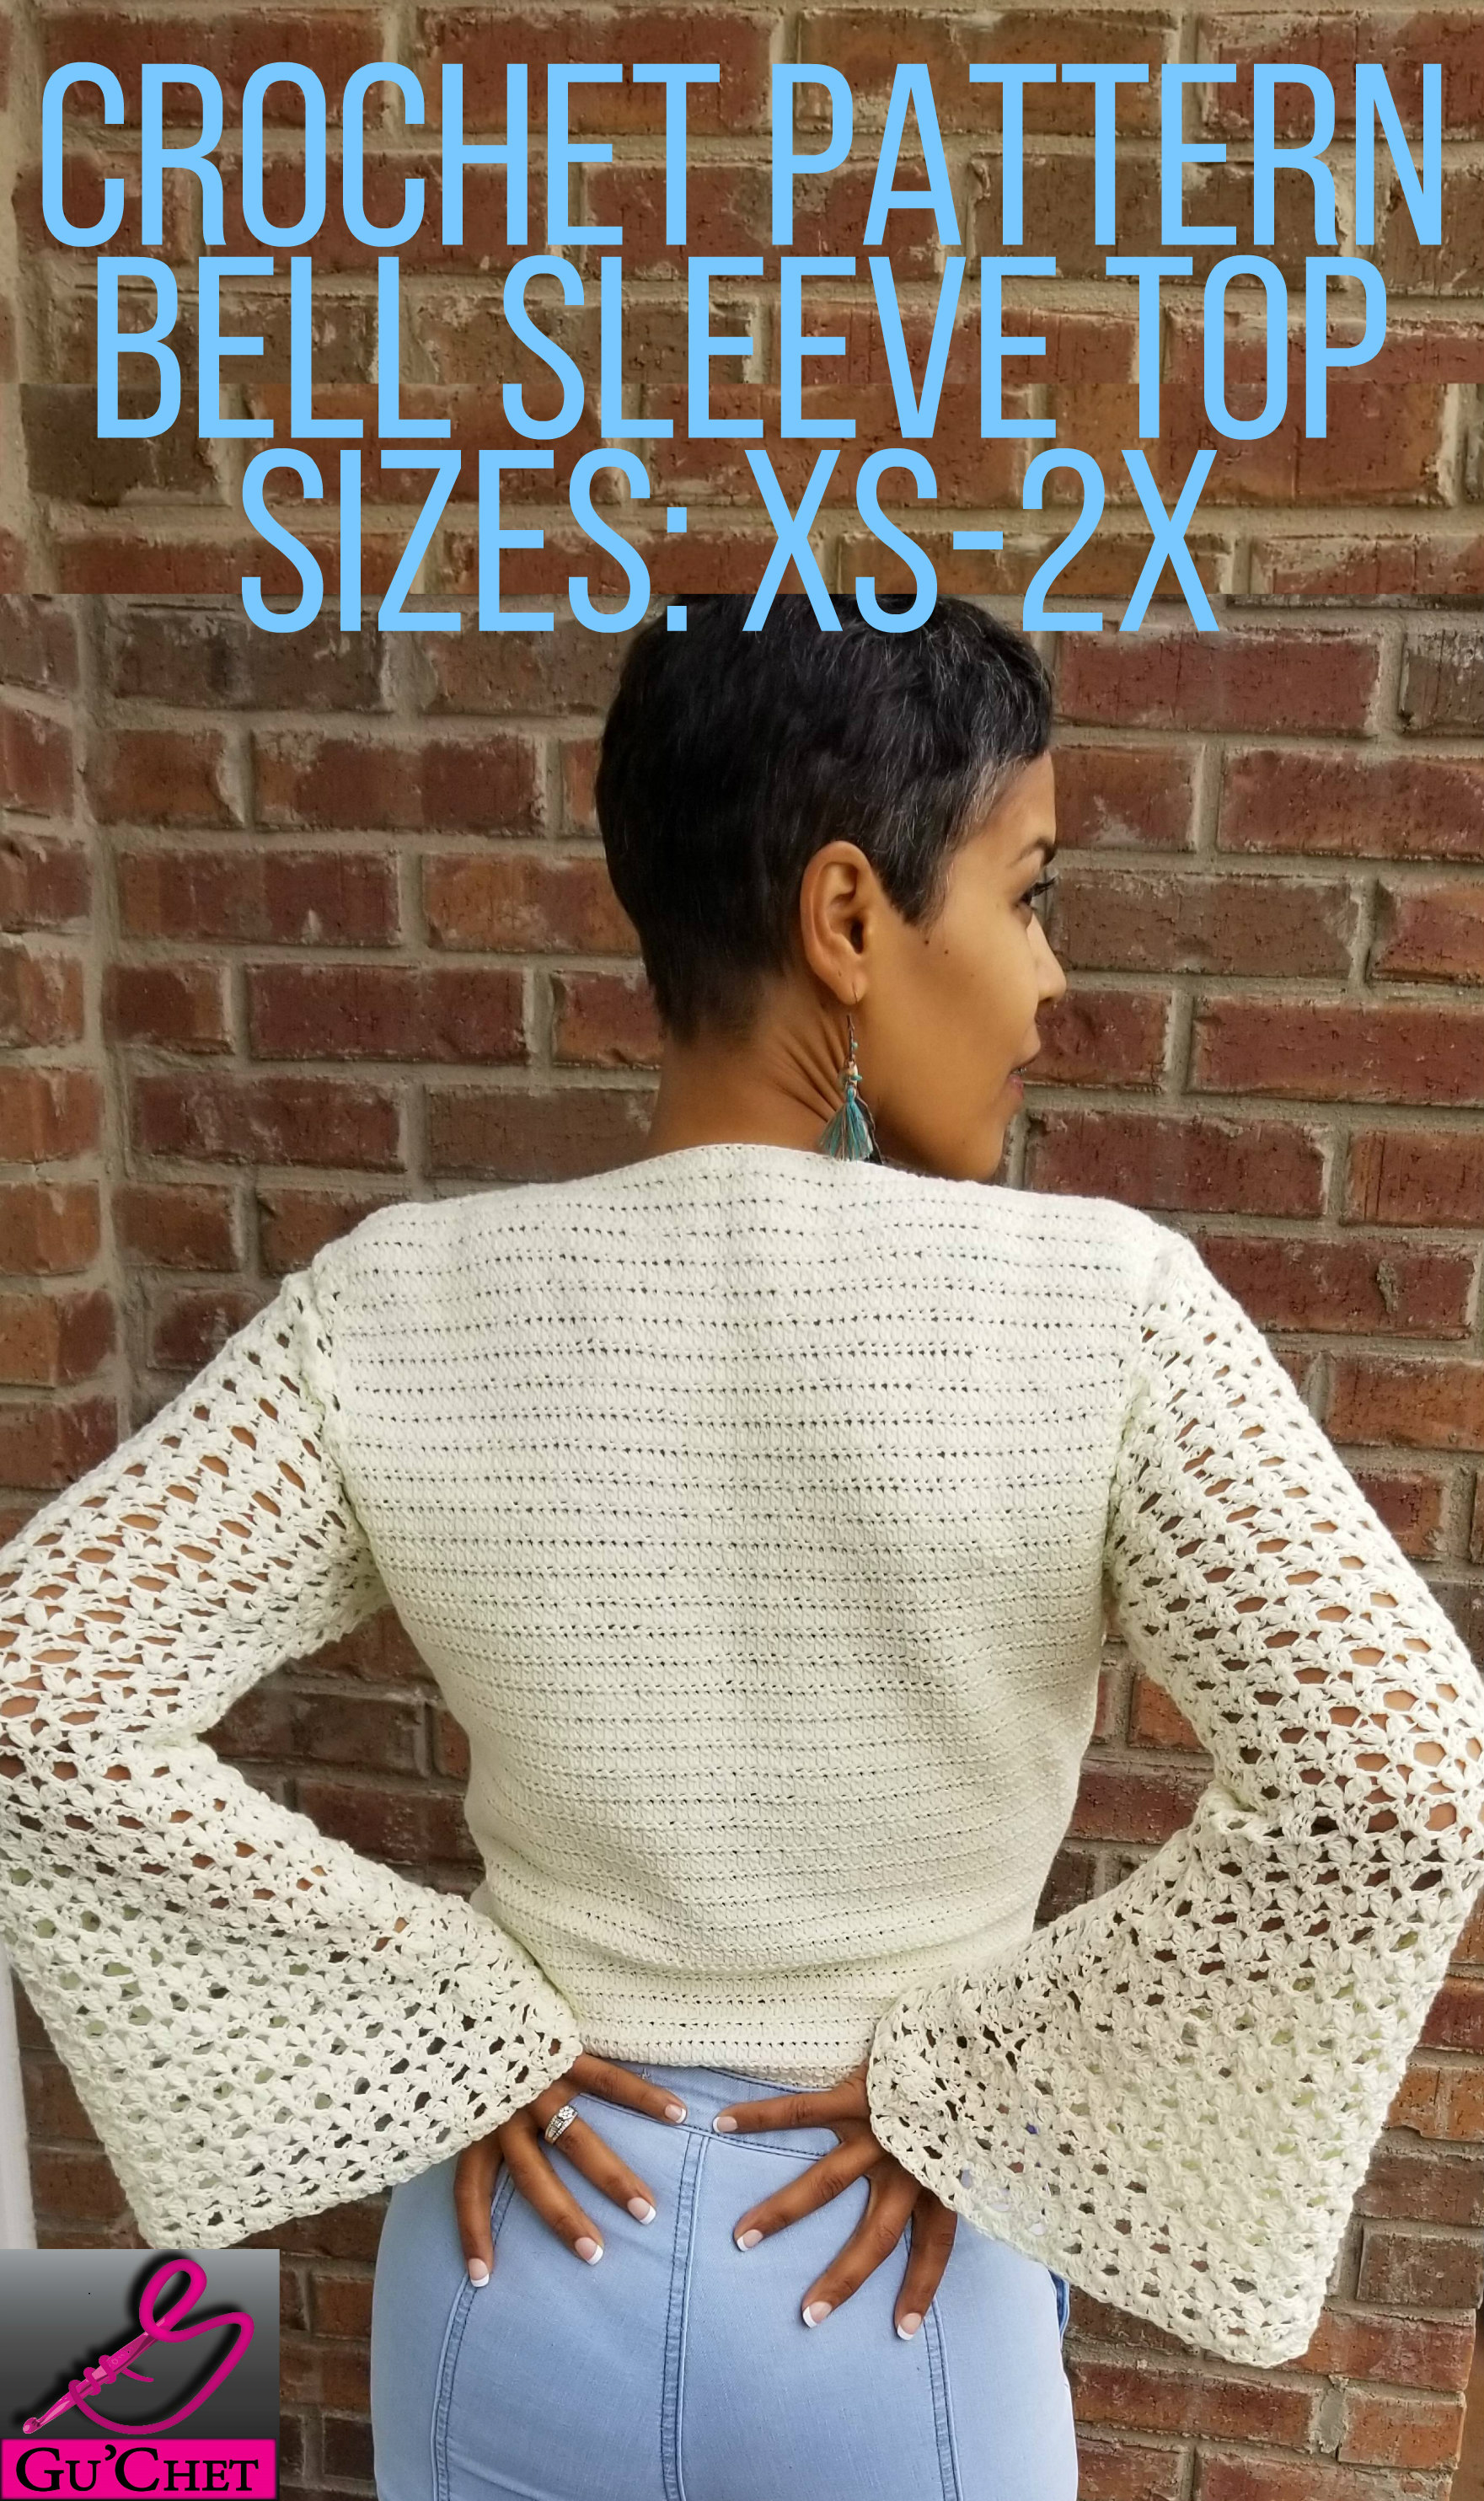 4_Crochet Top Pattern by GuChet_Bell Sleeve Top_19.jpg